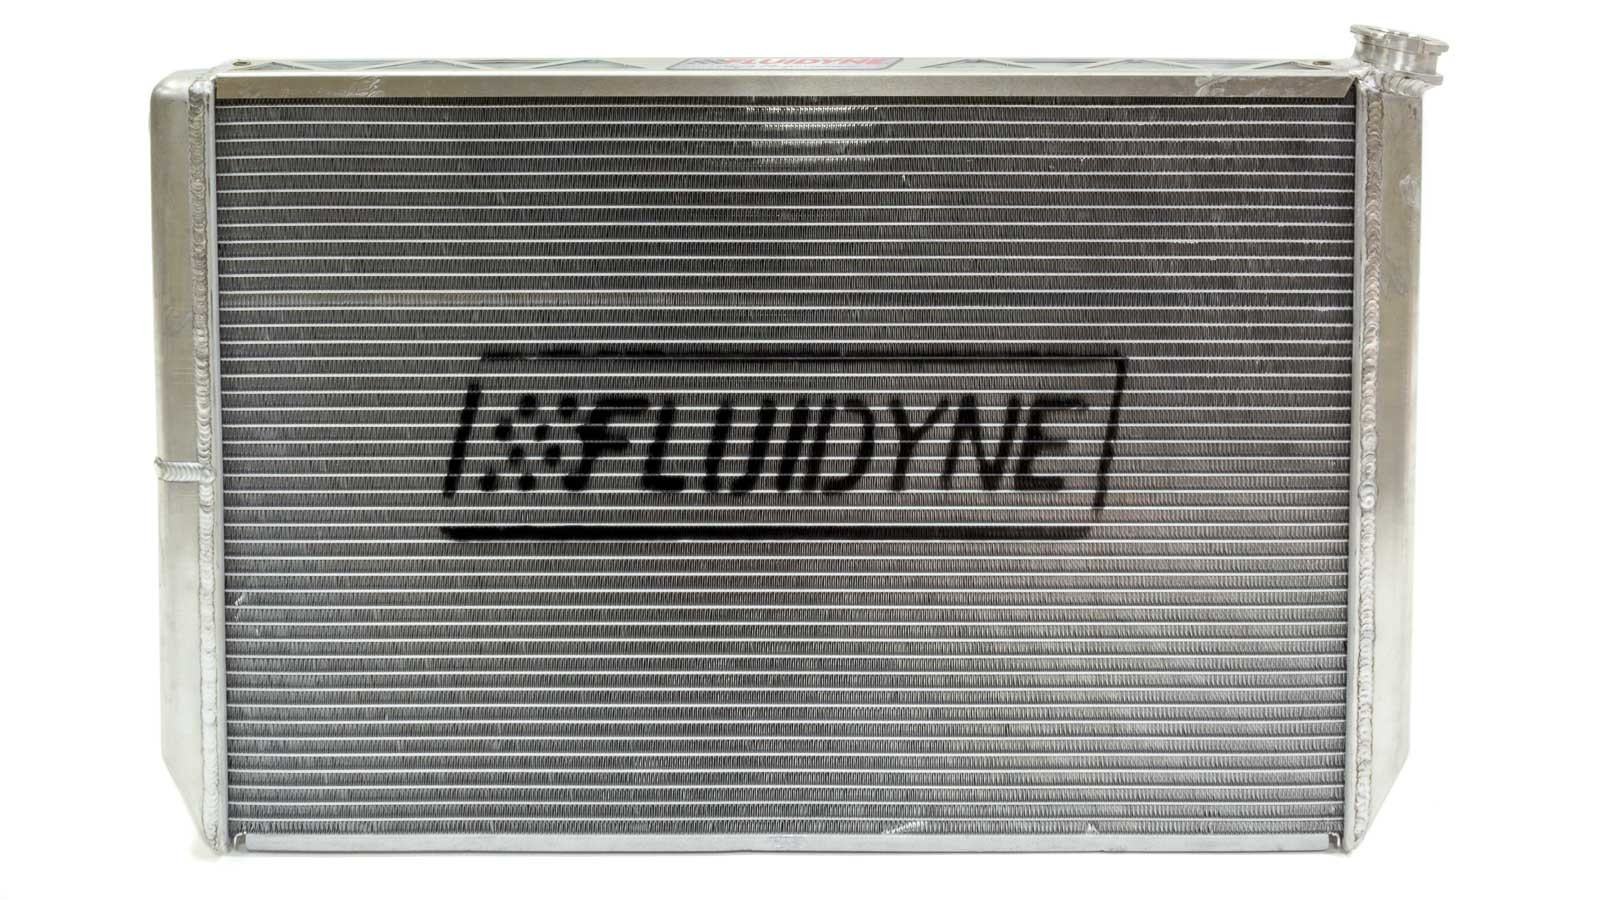 Fluidyne Performance FRP20-SLM-CM Radiator and Fan, Double Pass, 29 in W x 18 in H x 5-5/8 in D, Passenger Side Inlet, Passenger Side Outlet, Oil Cooler, Aluminum, Natural, Universal, Kit